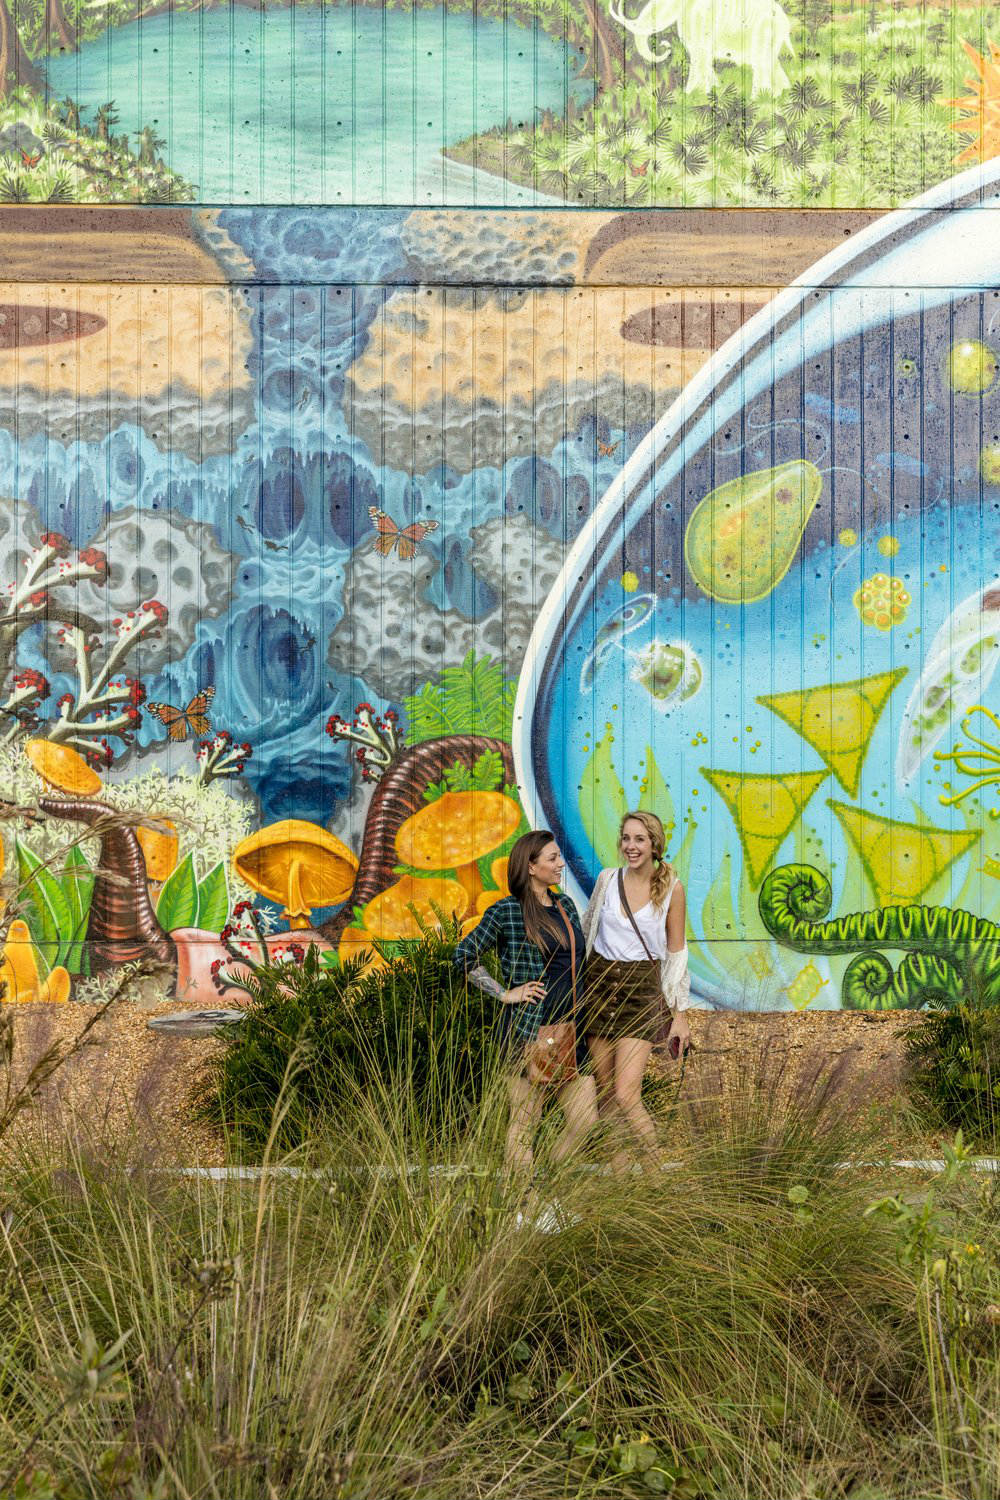 Best Free Attractions in Jacksonville FL - Free Art Murals in Downtown Jacksonville